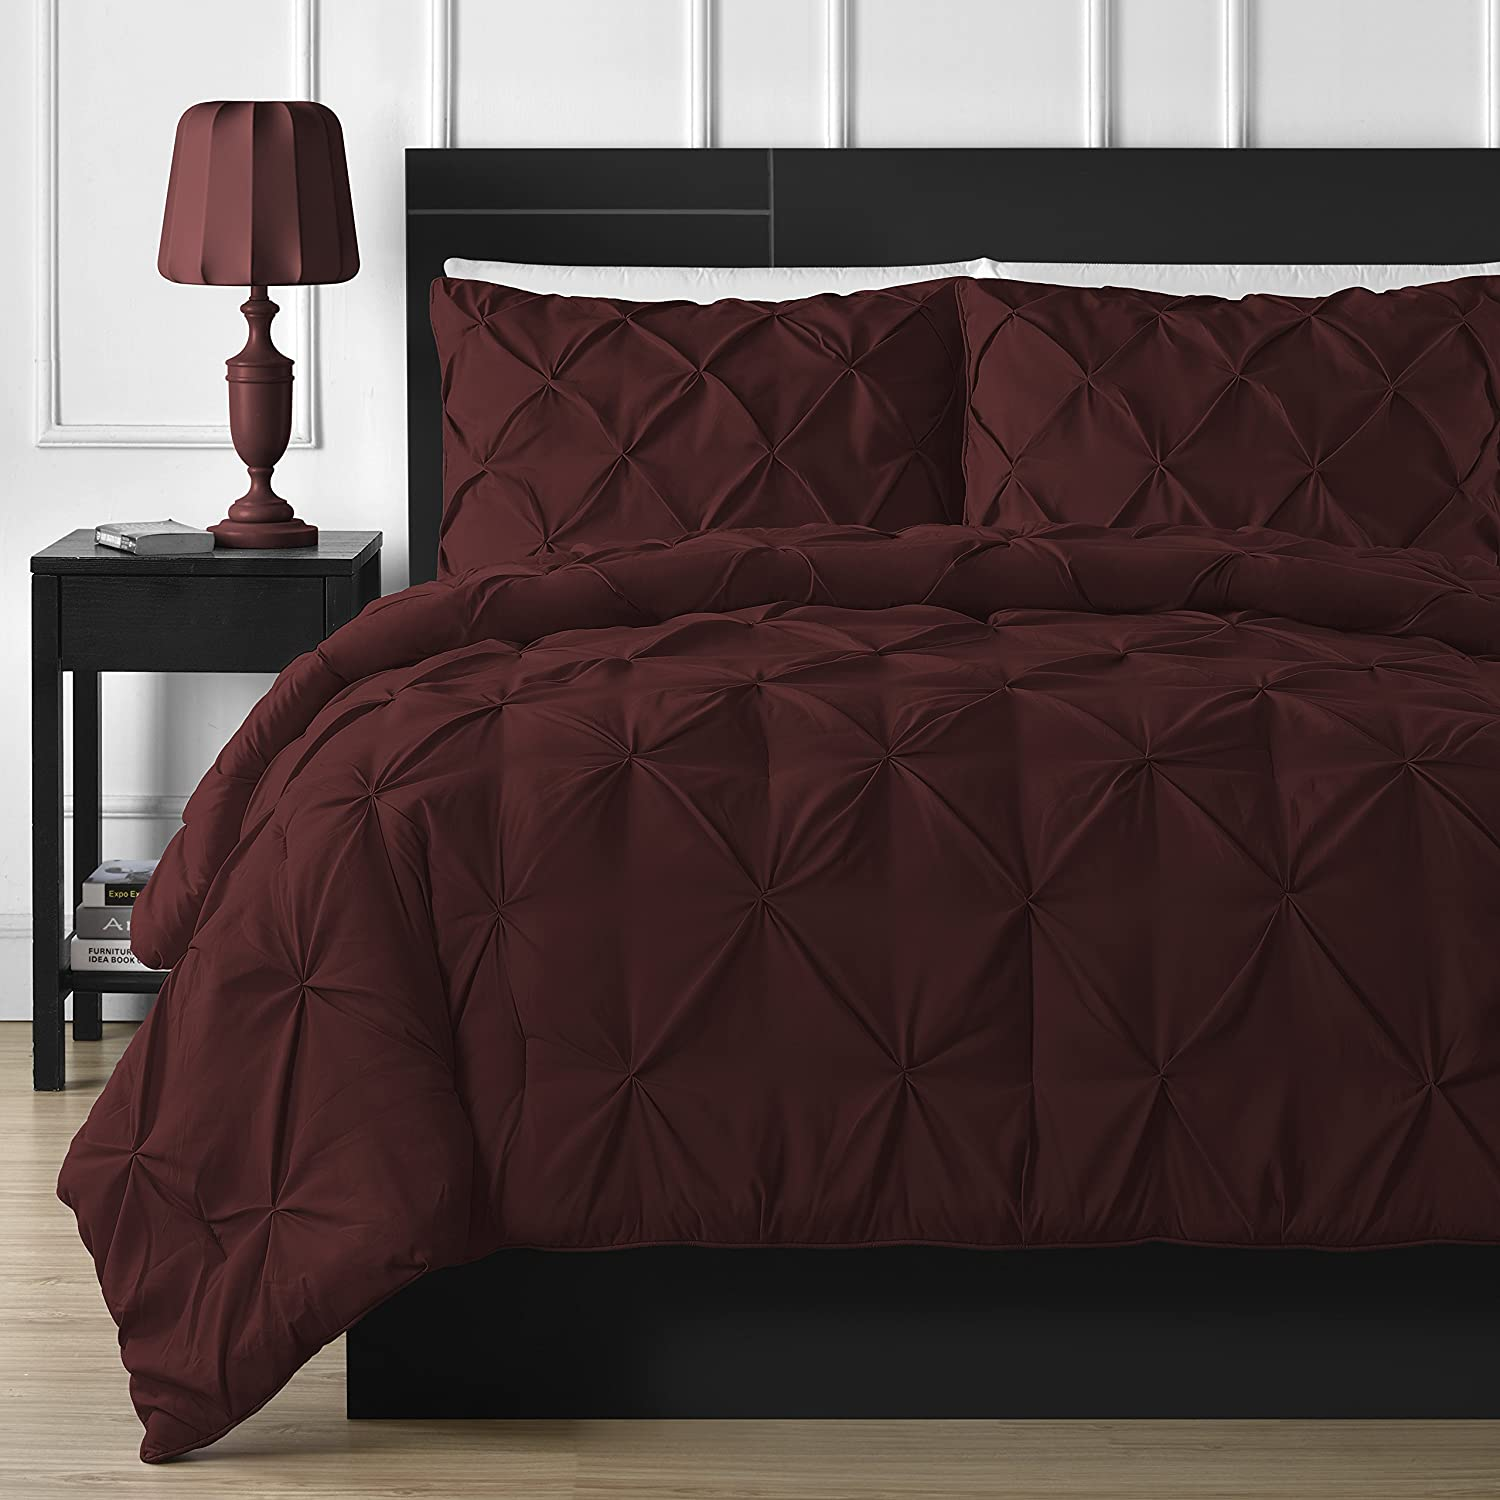 Double-needle Durable Stitching Comfy Bedding 3-piece Pinch Pleat Comforter Set Full, Burgundy